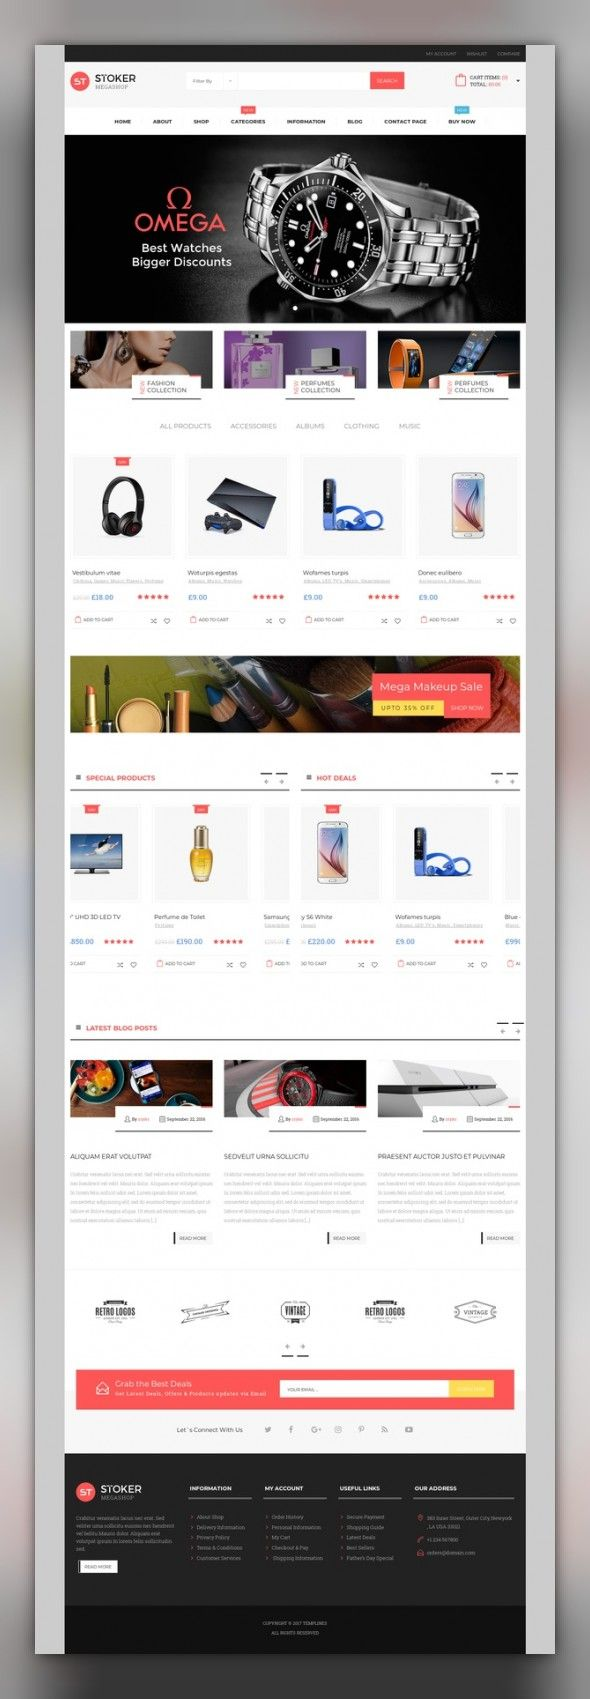 Stoker - Market WooCommerce Theme E-commerce Templates, WooCommerce Themes, Fashion & Beauty, Fashion Templates, Shoe Store Templates Descriptions:Stoker Mega Shop is an WooCommerce theme for any kind of online shop / store to sell products. Its clean, modern and multipurpose design also suitable for any kind of onlin...